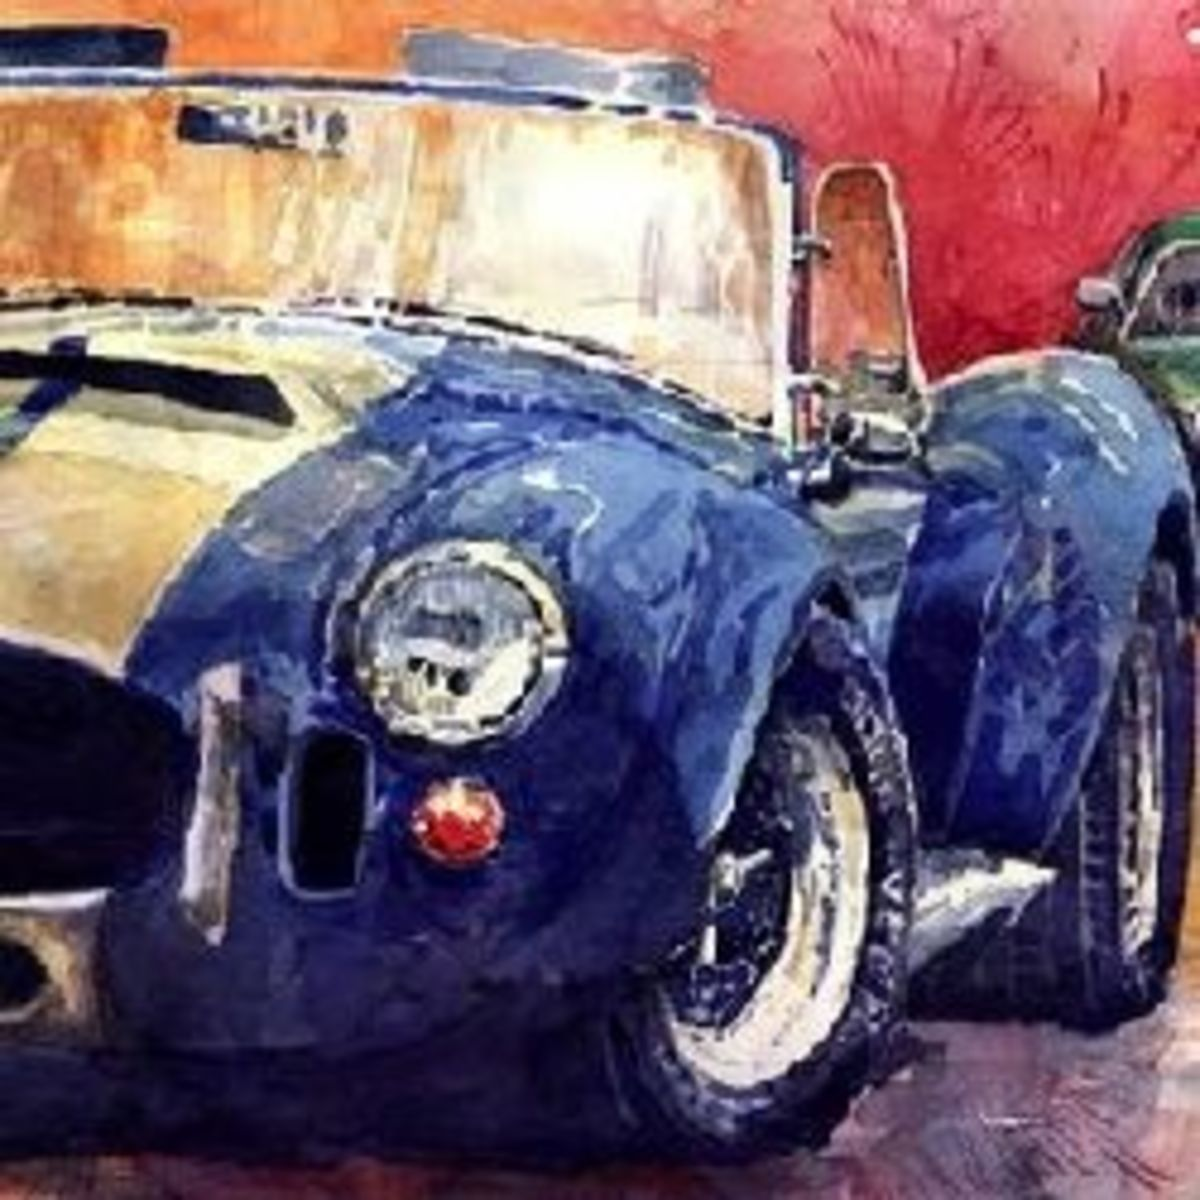 shelby-cobra-posters